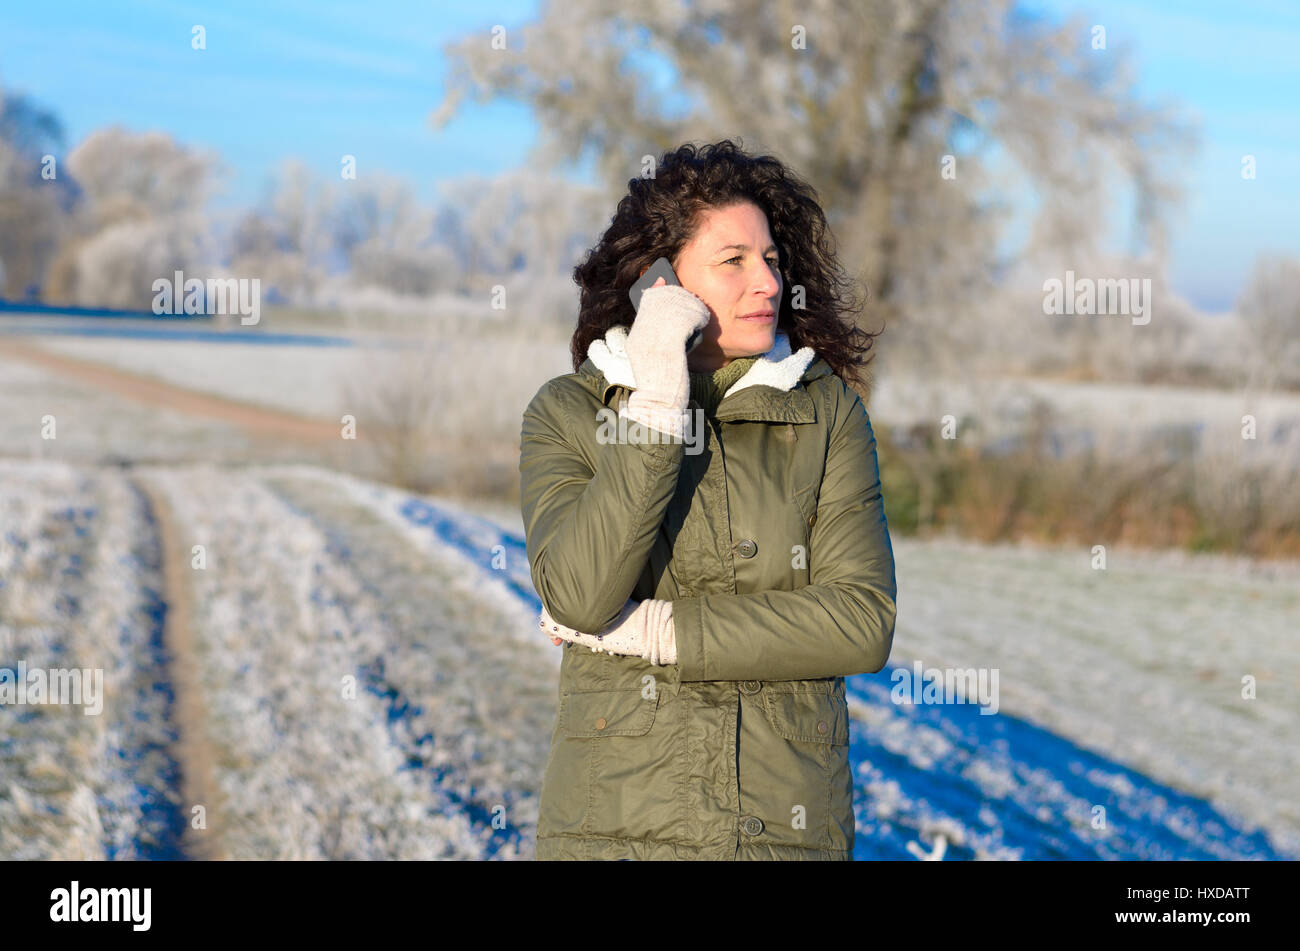 Young woman standing outdoors chatting on her mobile o a cold winter morning with a layer of hoar frost on the ground - Stock Image